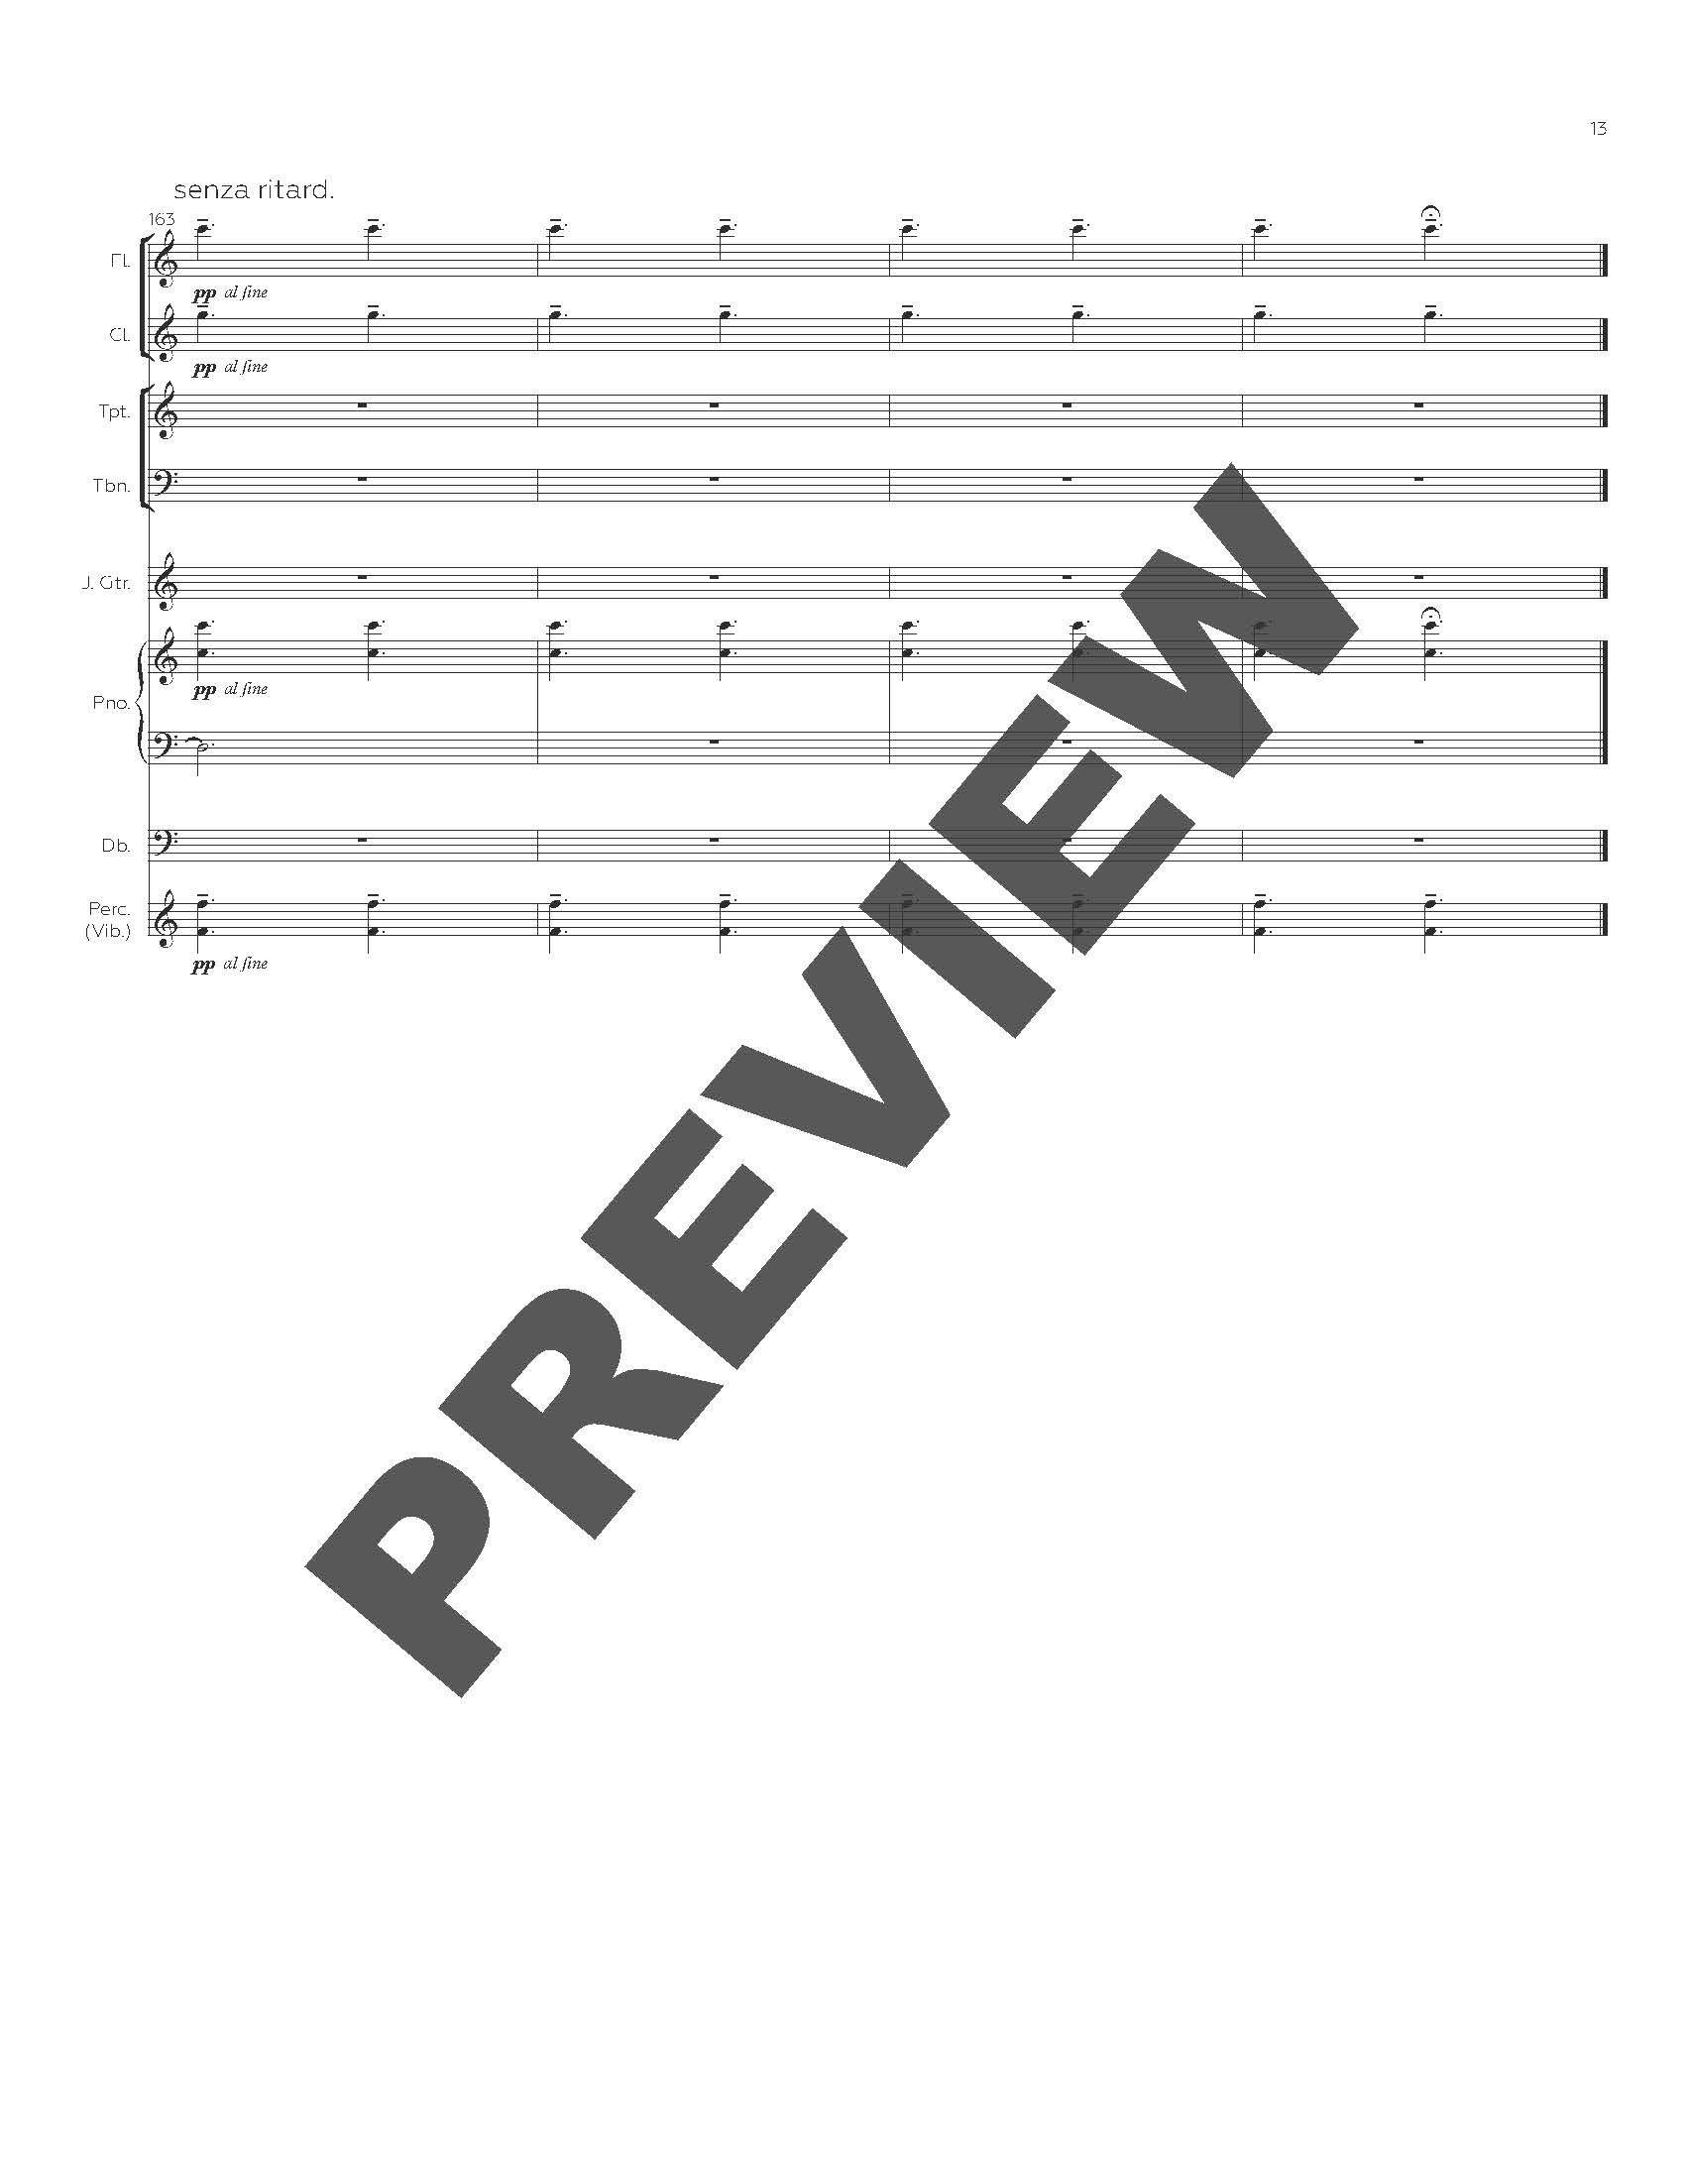 Study in Gold - Full Score_Page_15.jpg